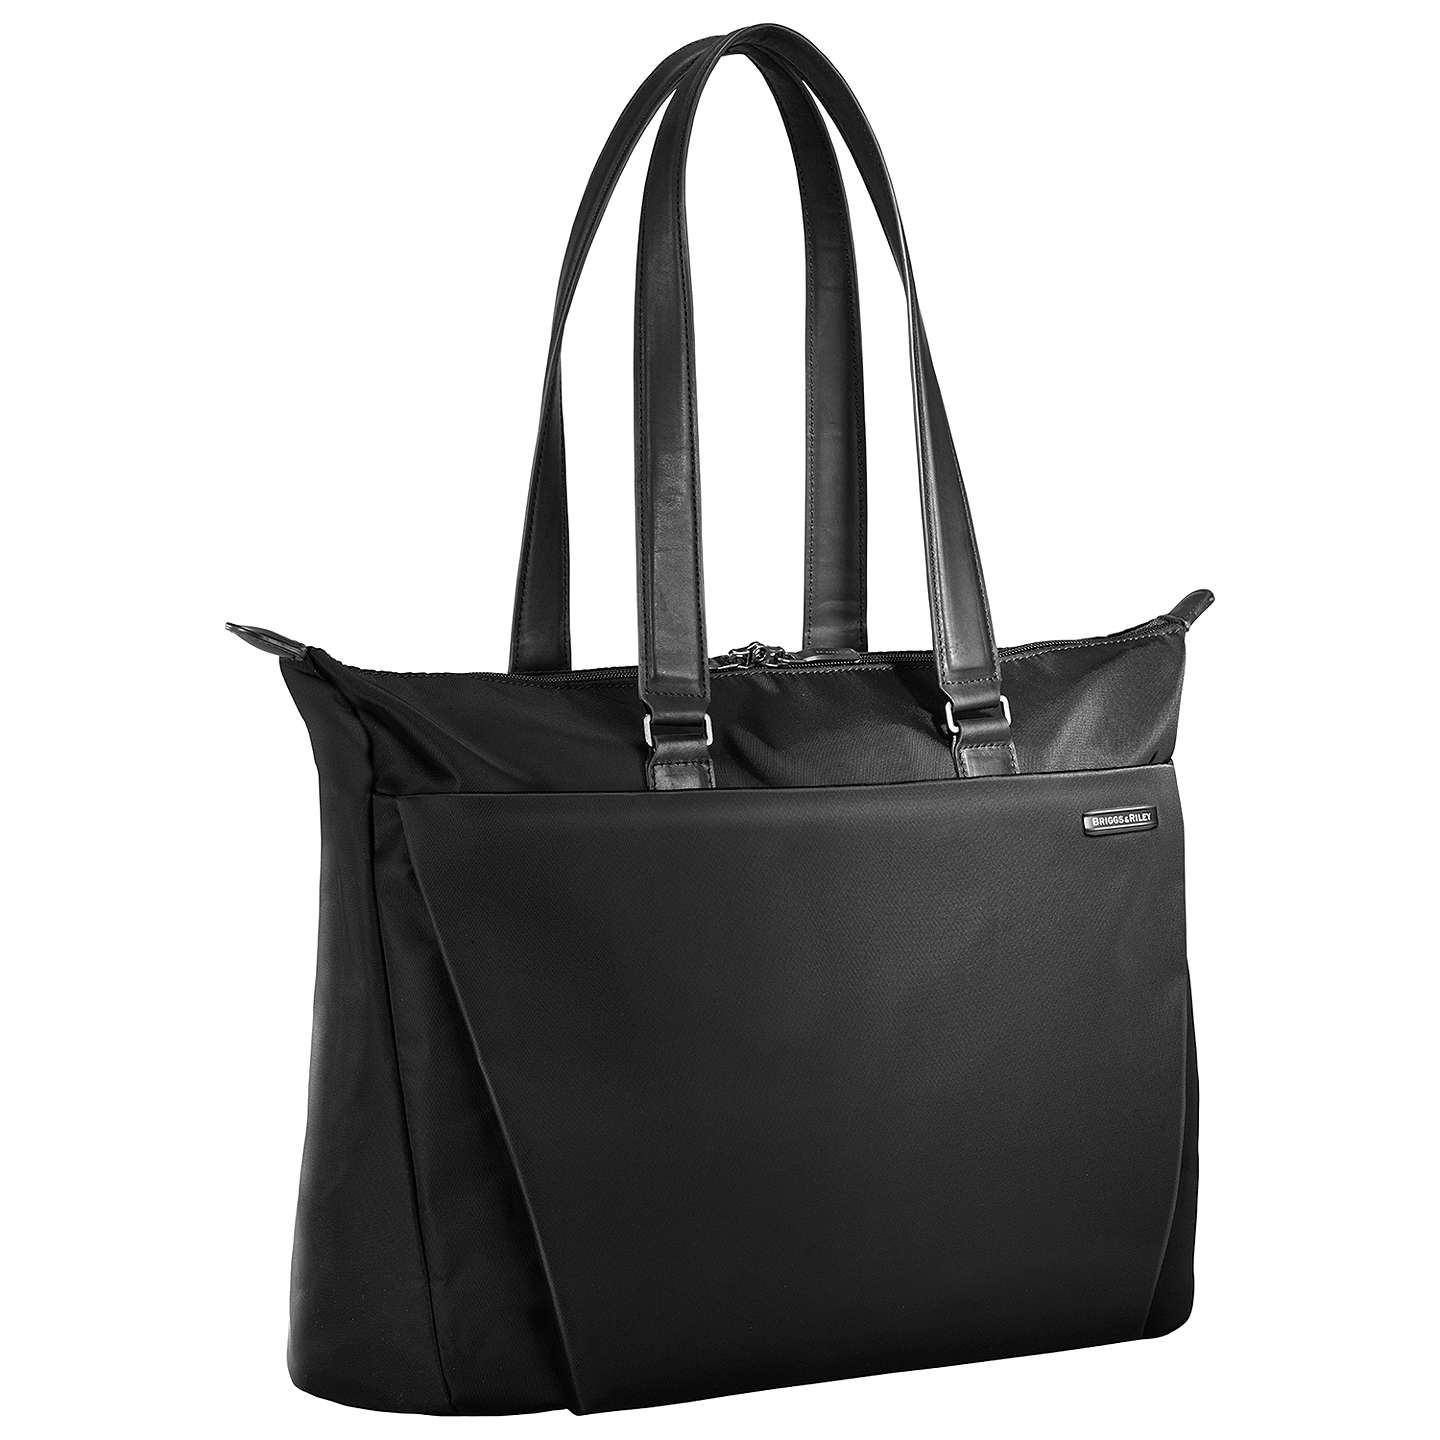 BuyBriggs & Riley Sympatico Shopping Tote Nylon Bag, Black Online at johnlewis.com